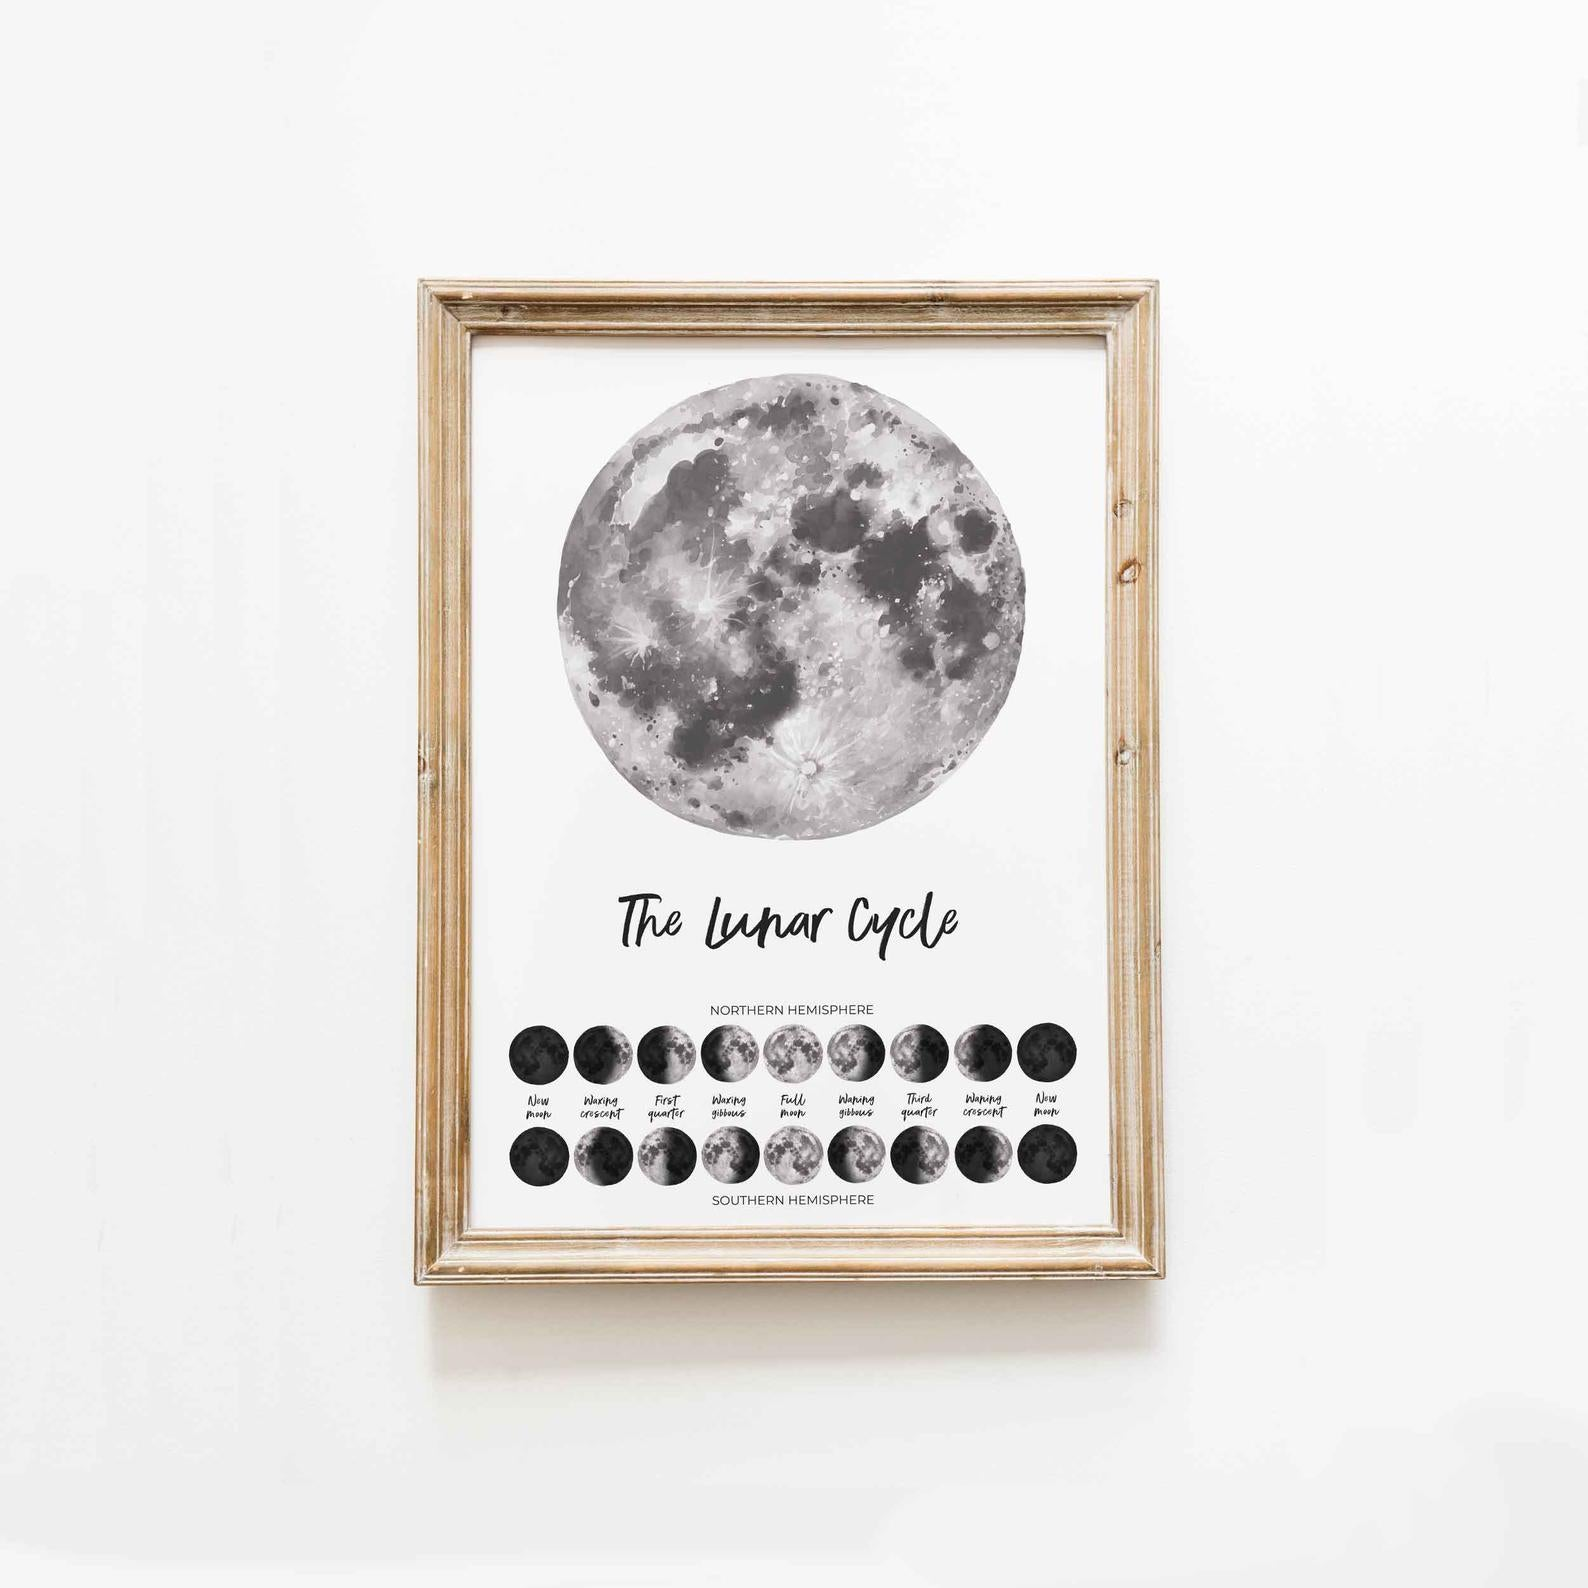 The Lunar Cycle (A3)